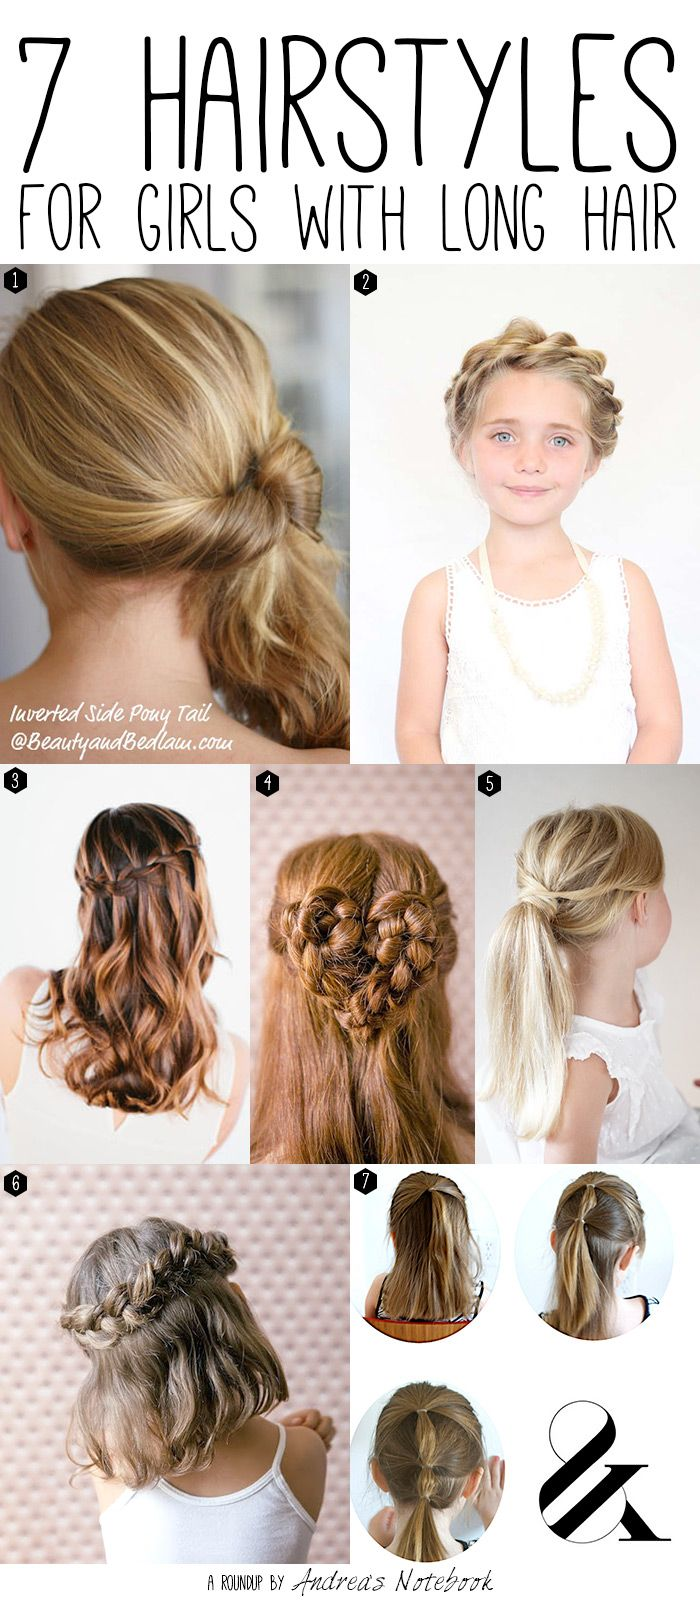 363 best toddler hairstyles images on pinterest | hairstyles, hair